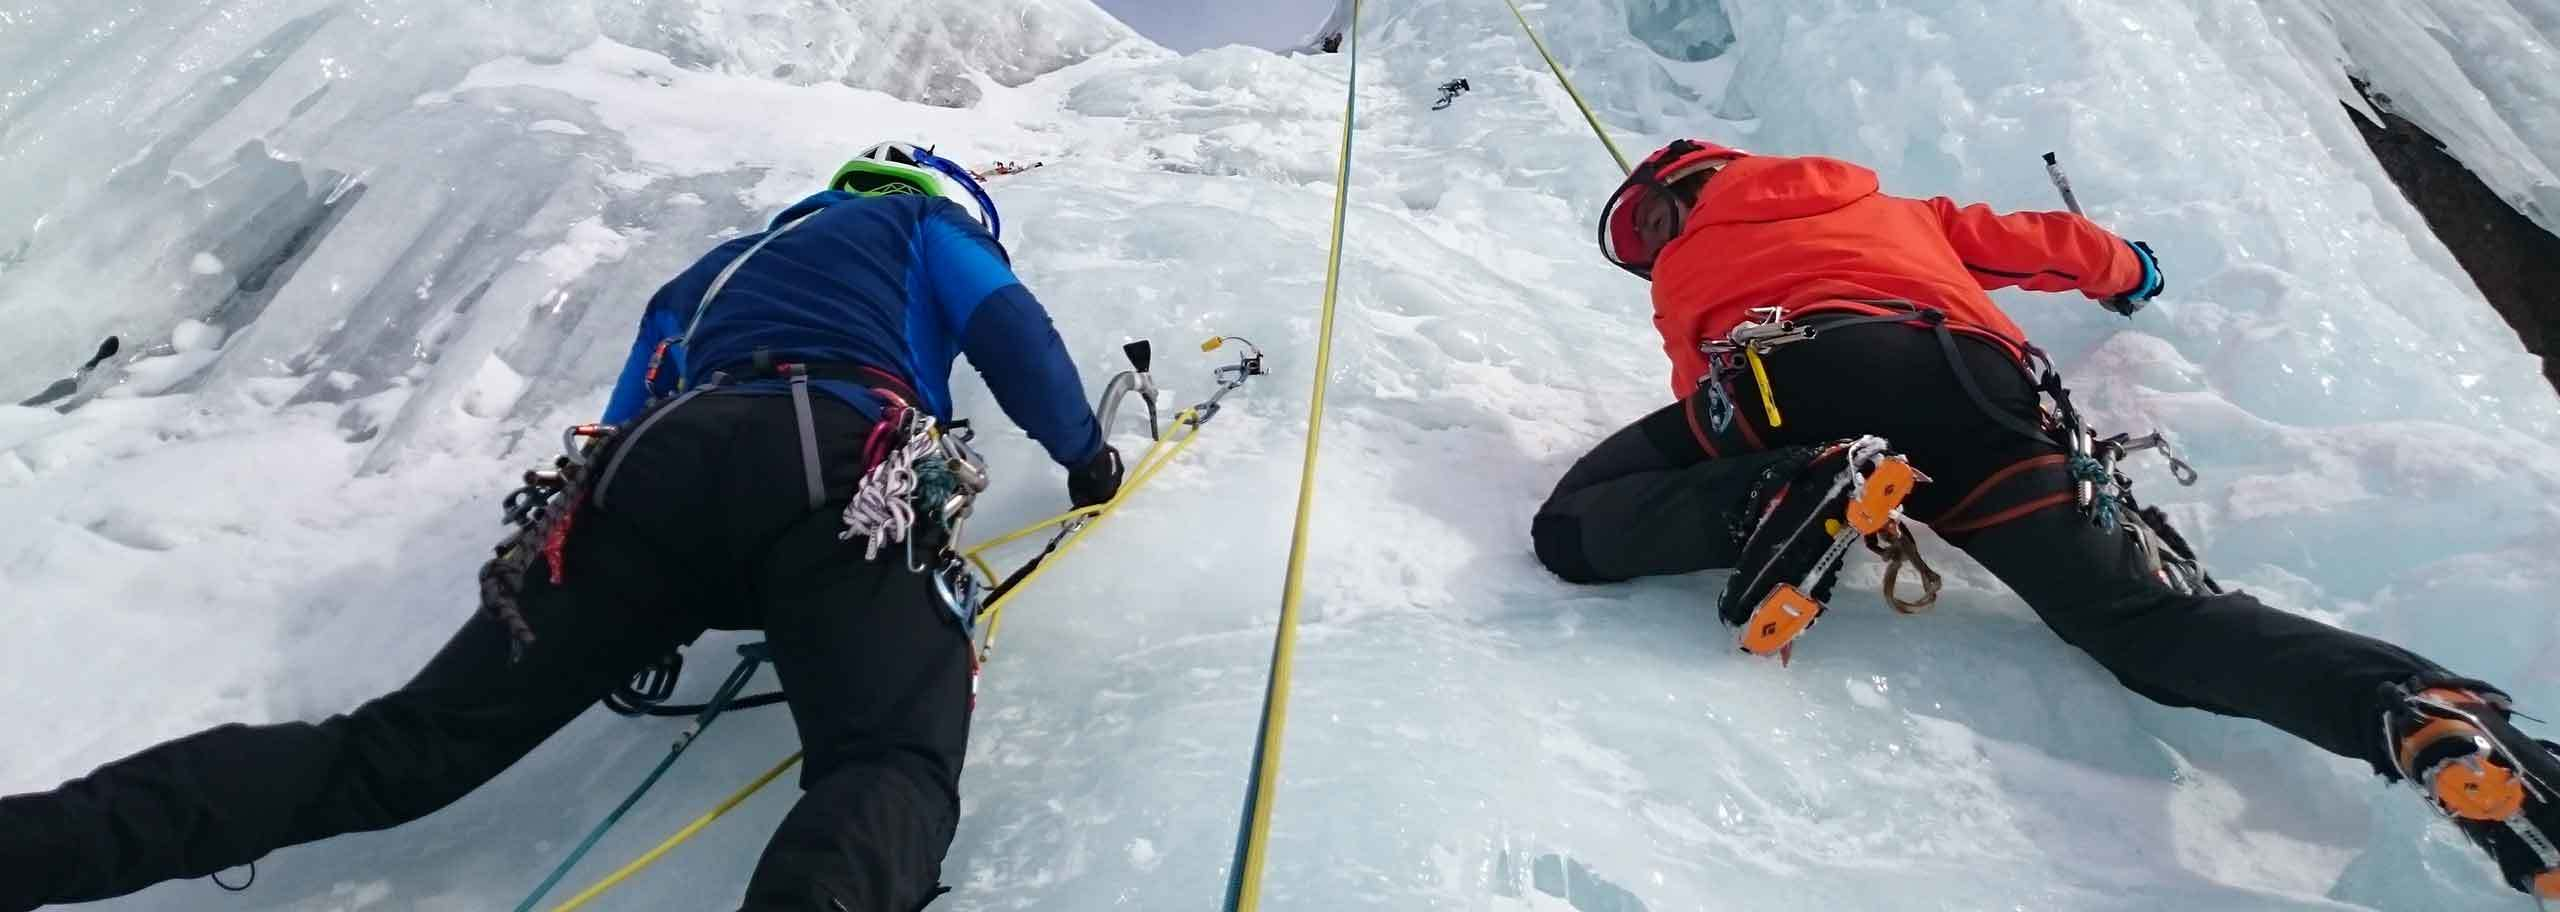 Ice Climbing in Cervinia with a Mountain Guide